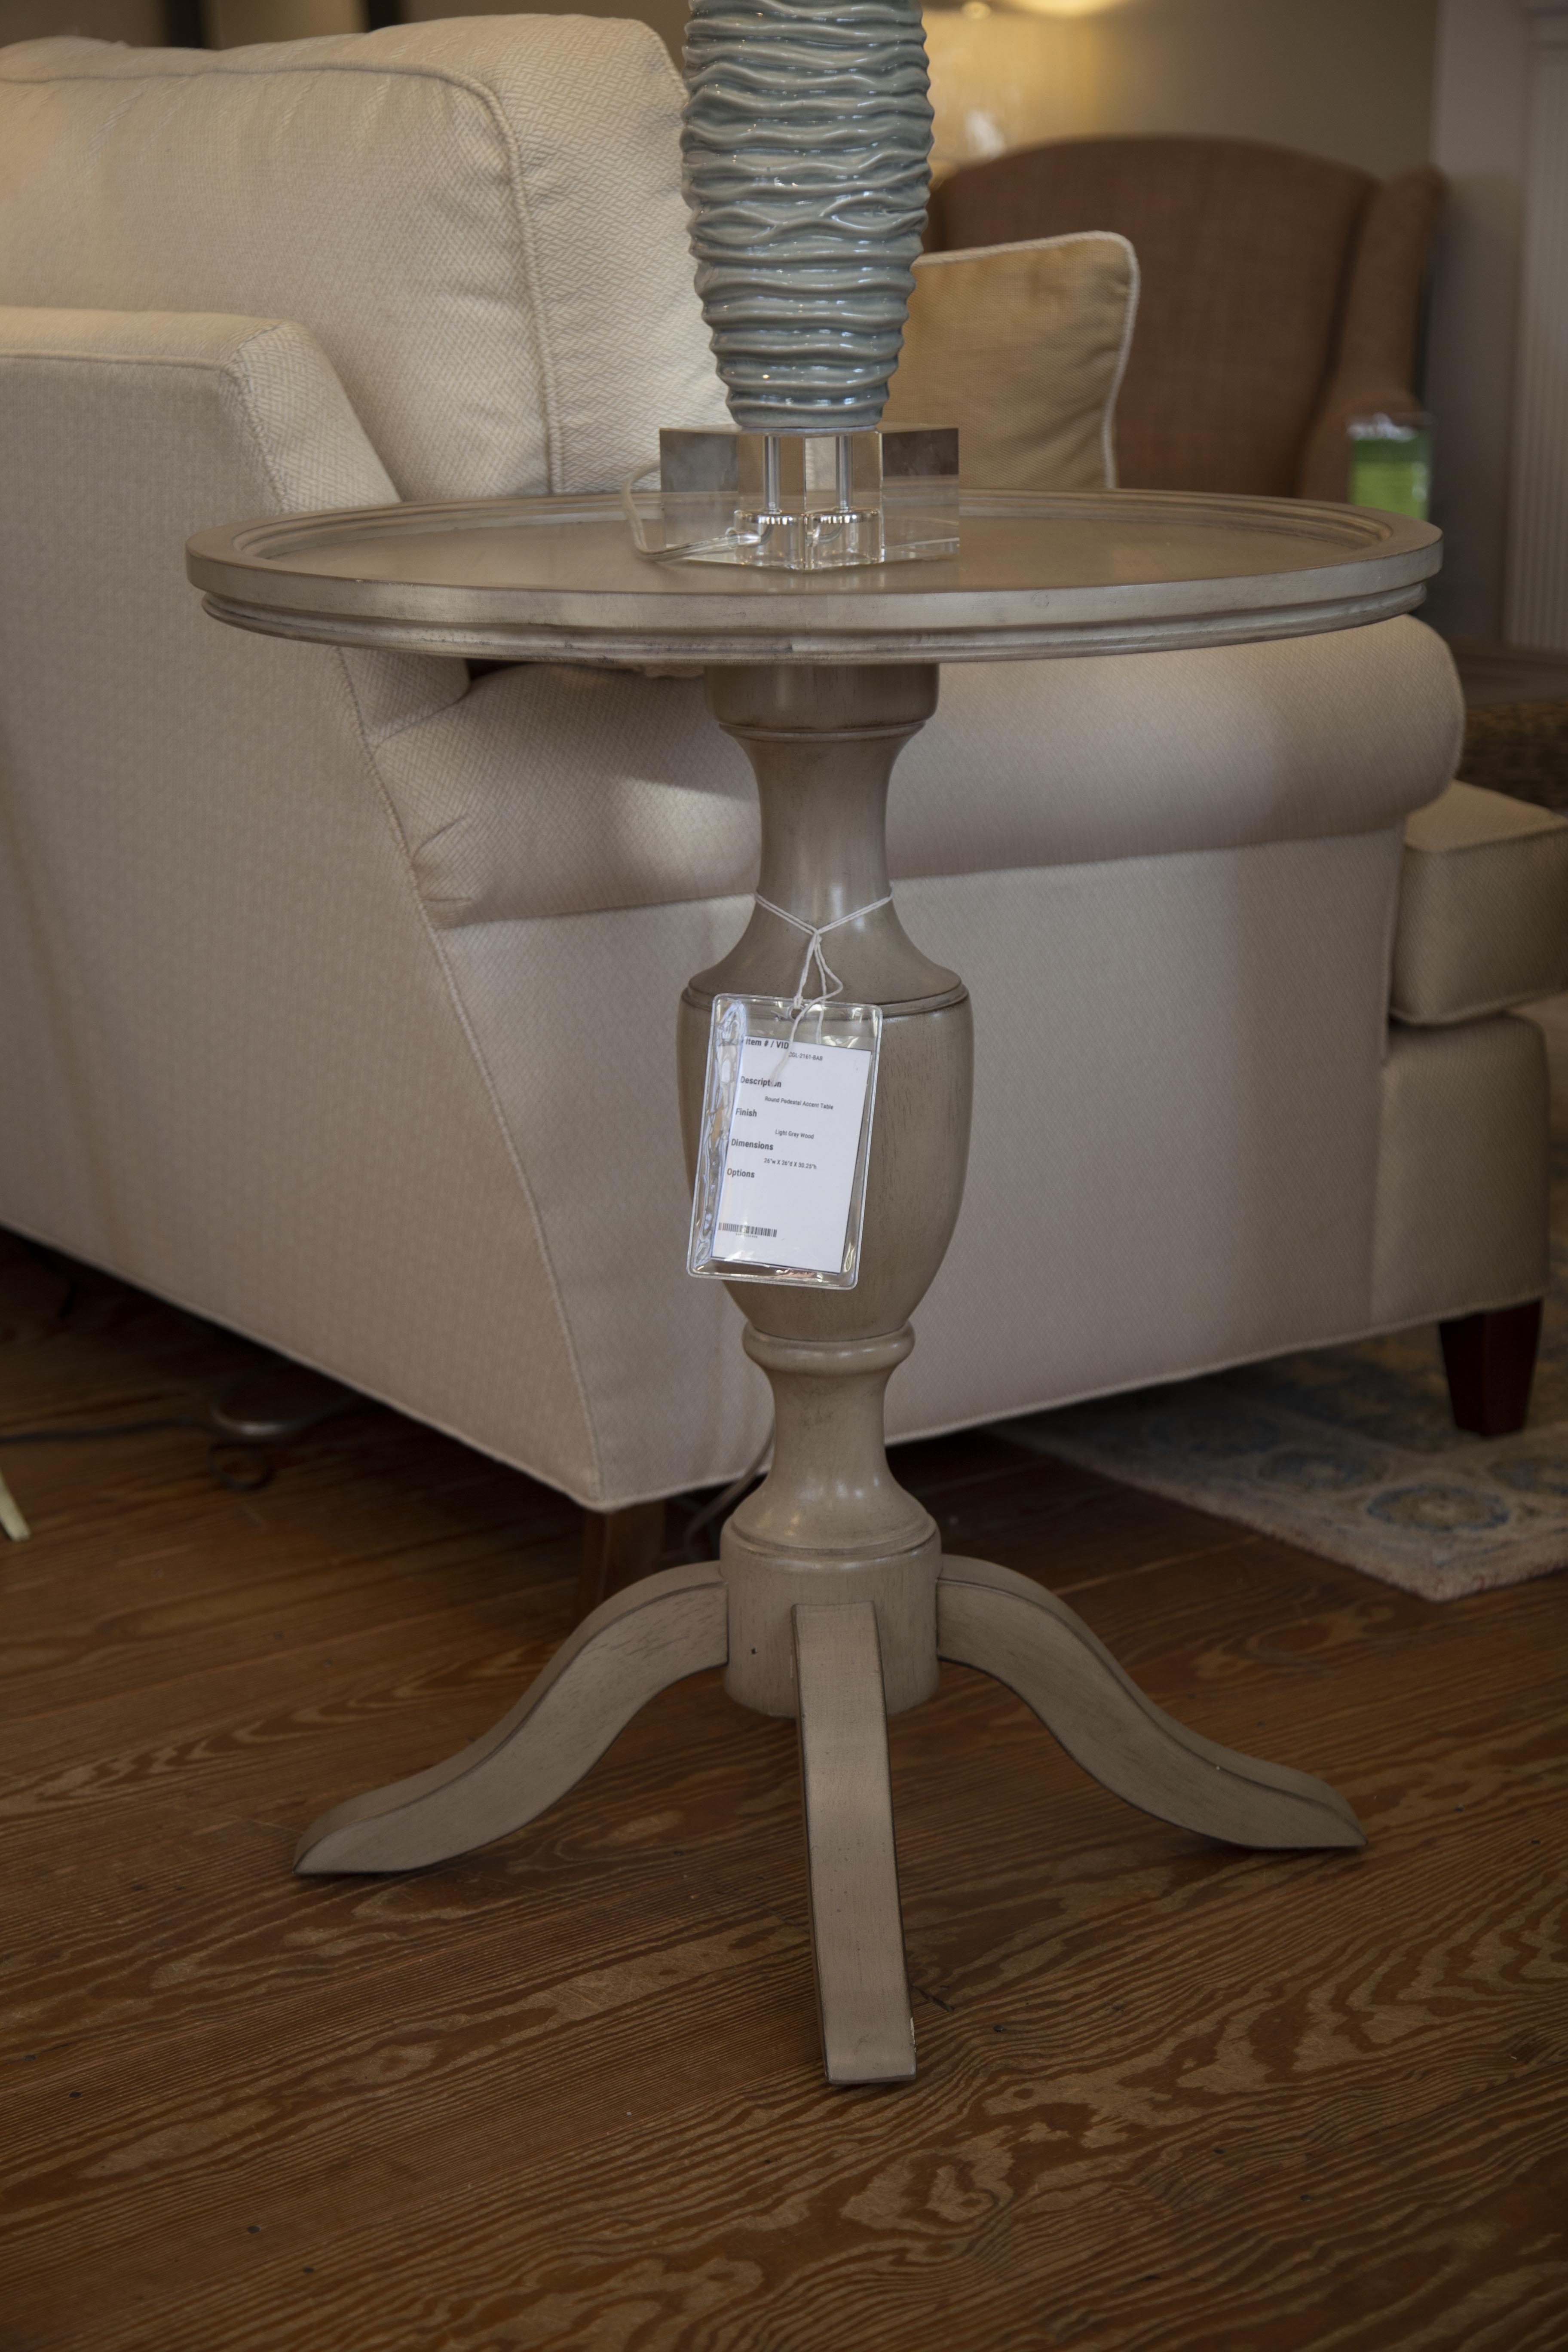 round pedestal accent table saybrook home wood grey large tilting patio umbrella metal and glass end tables entryway dresser target rattan cool bar wicker basket side for living